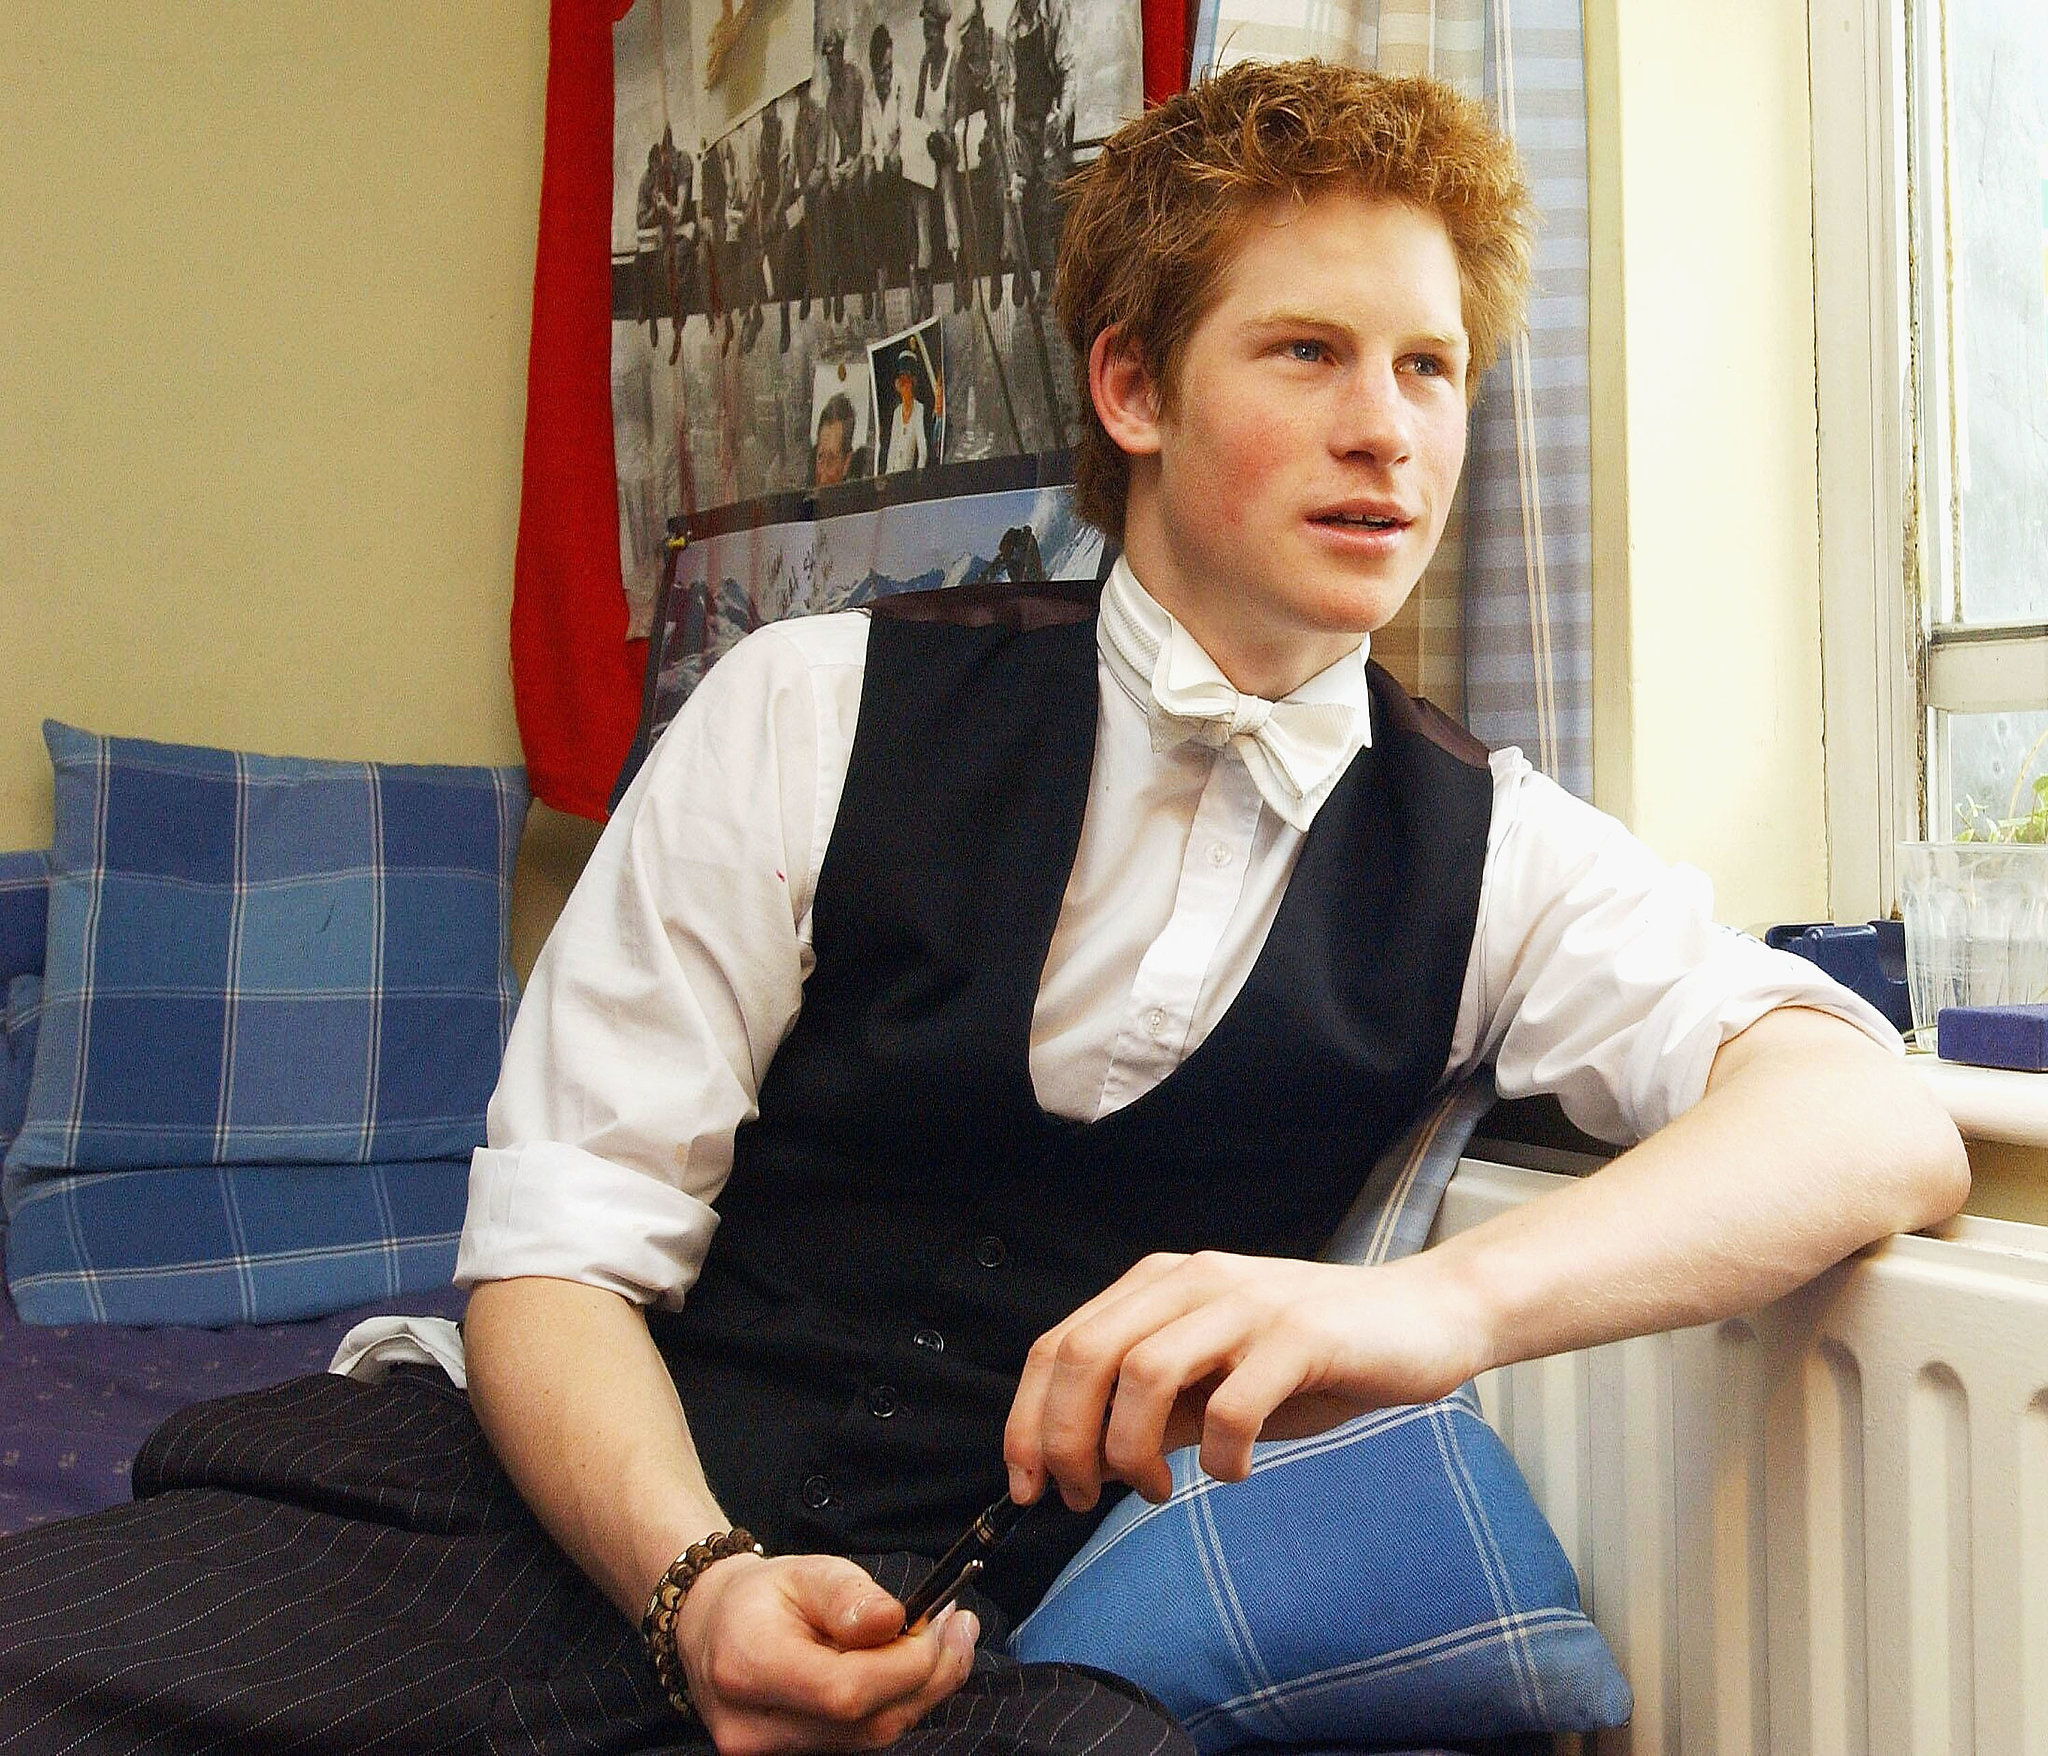 Prince Harry was snapped at Eton in 2003.